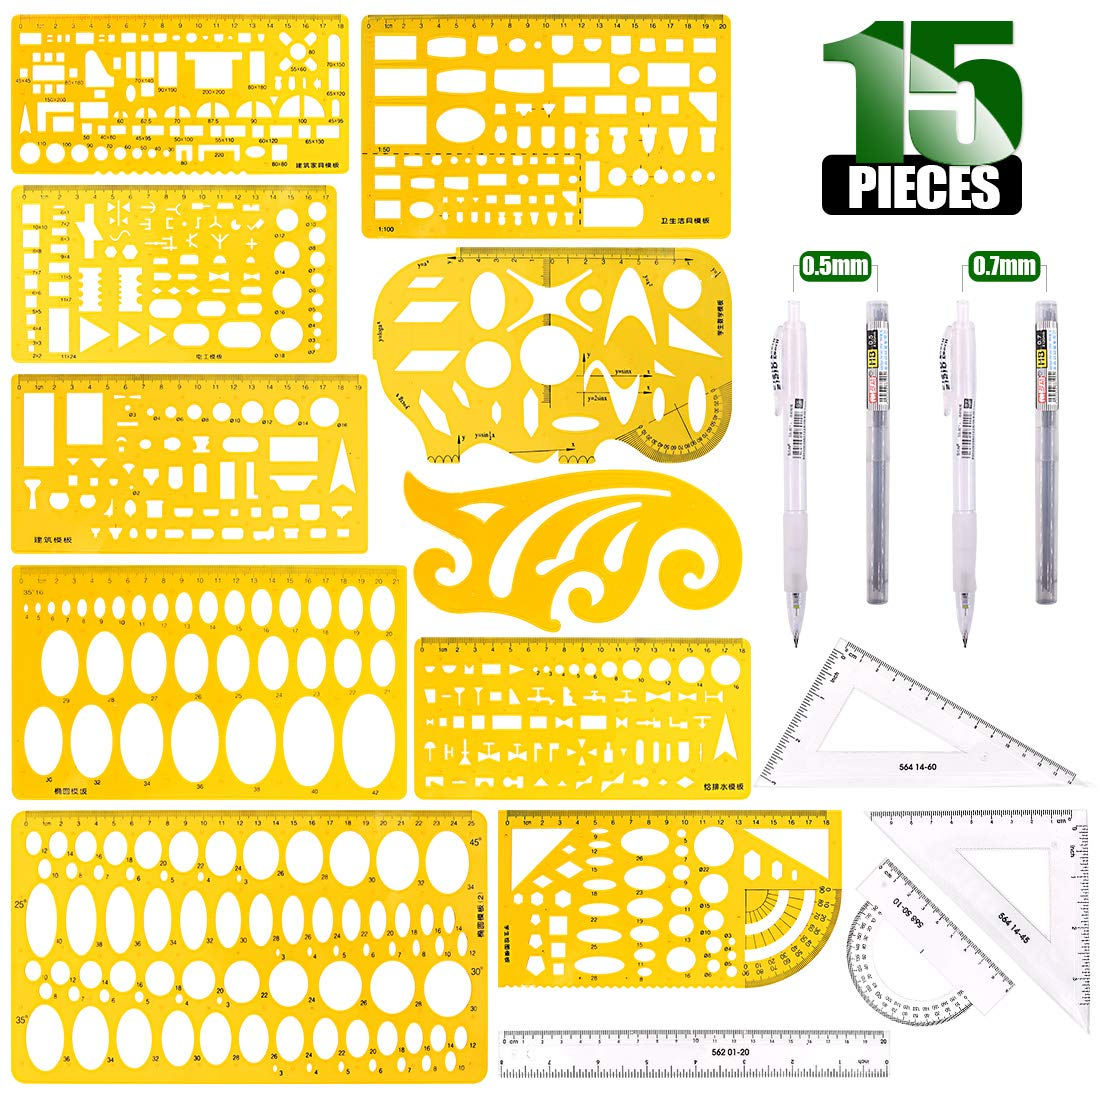 Keadic 15 Pieces Curve and Template Ruler Kit Protractor,Circle Template, French Curve Ruler and Mechanical Pencil for Drafting Illustrations Architecture & School Work by Keadic